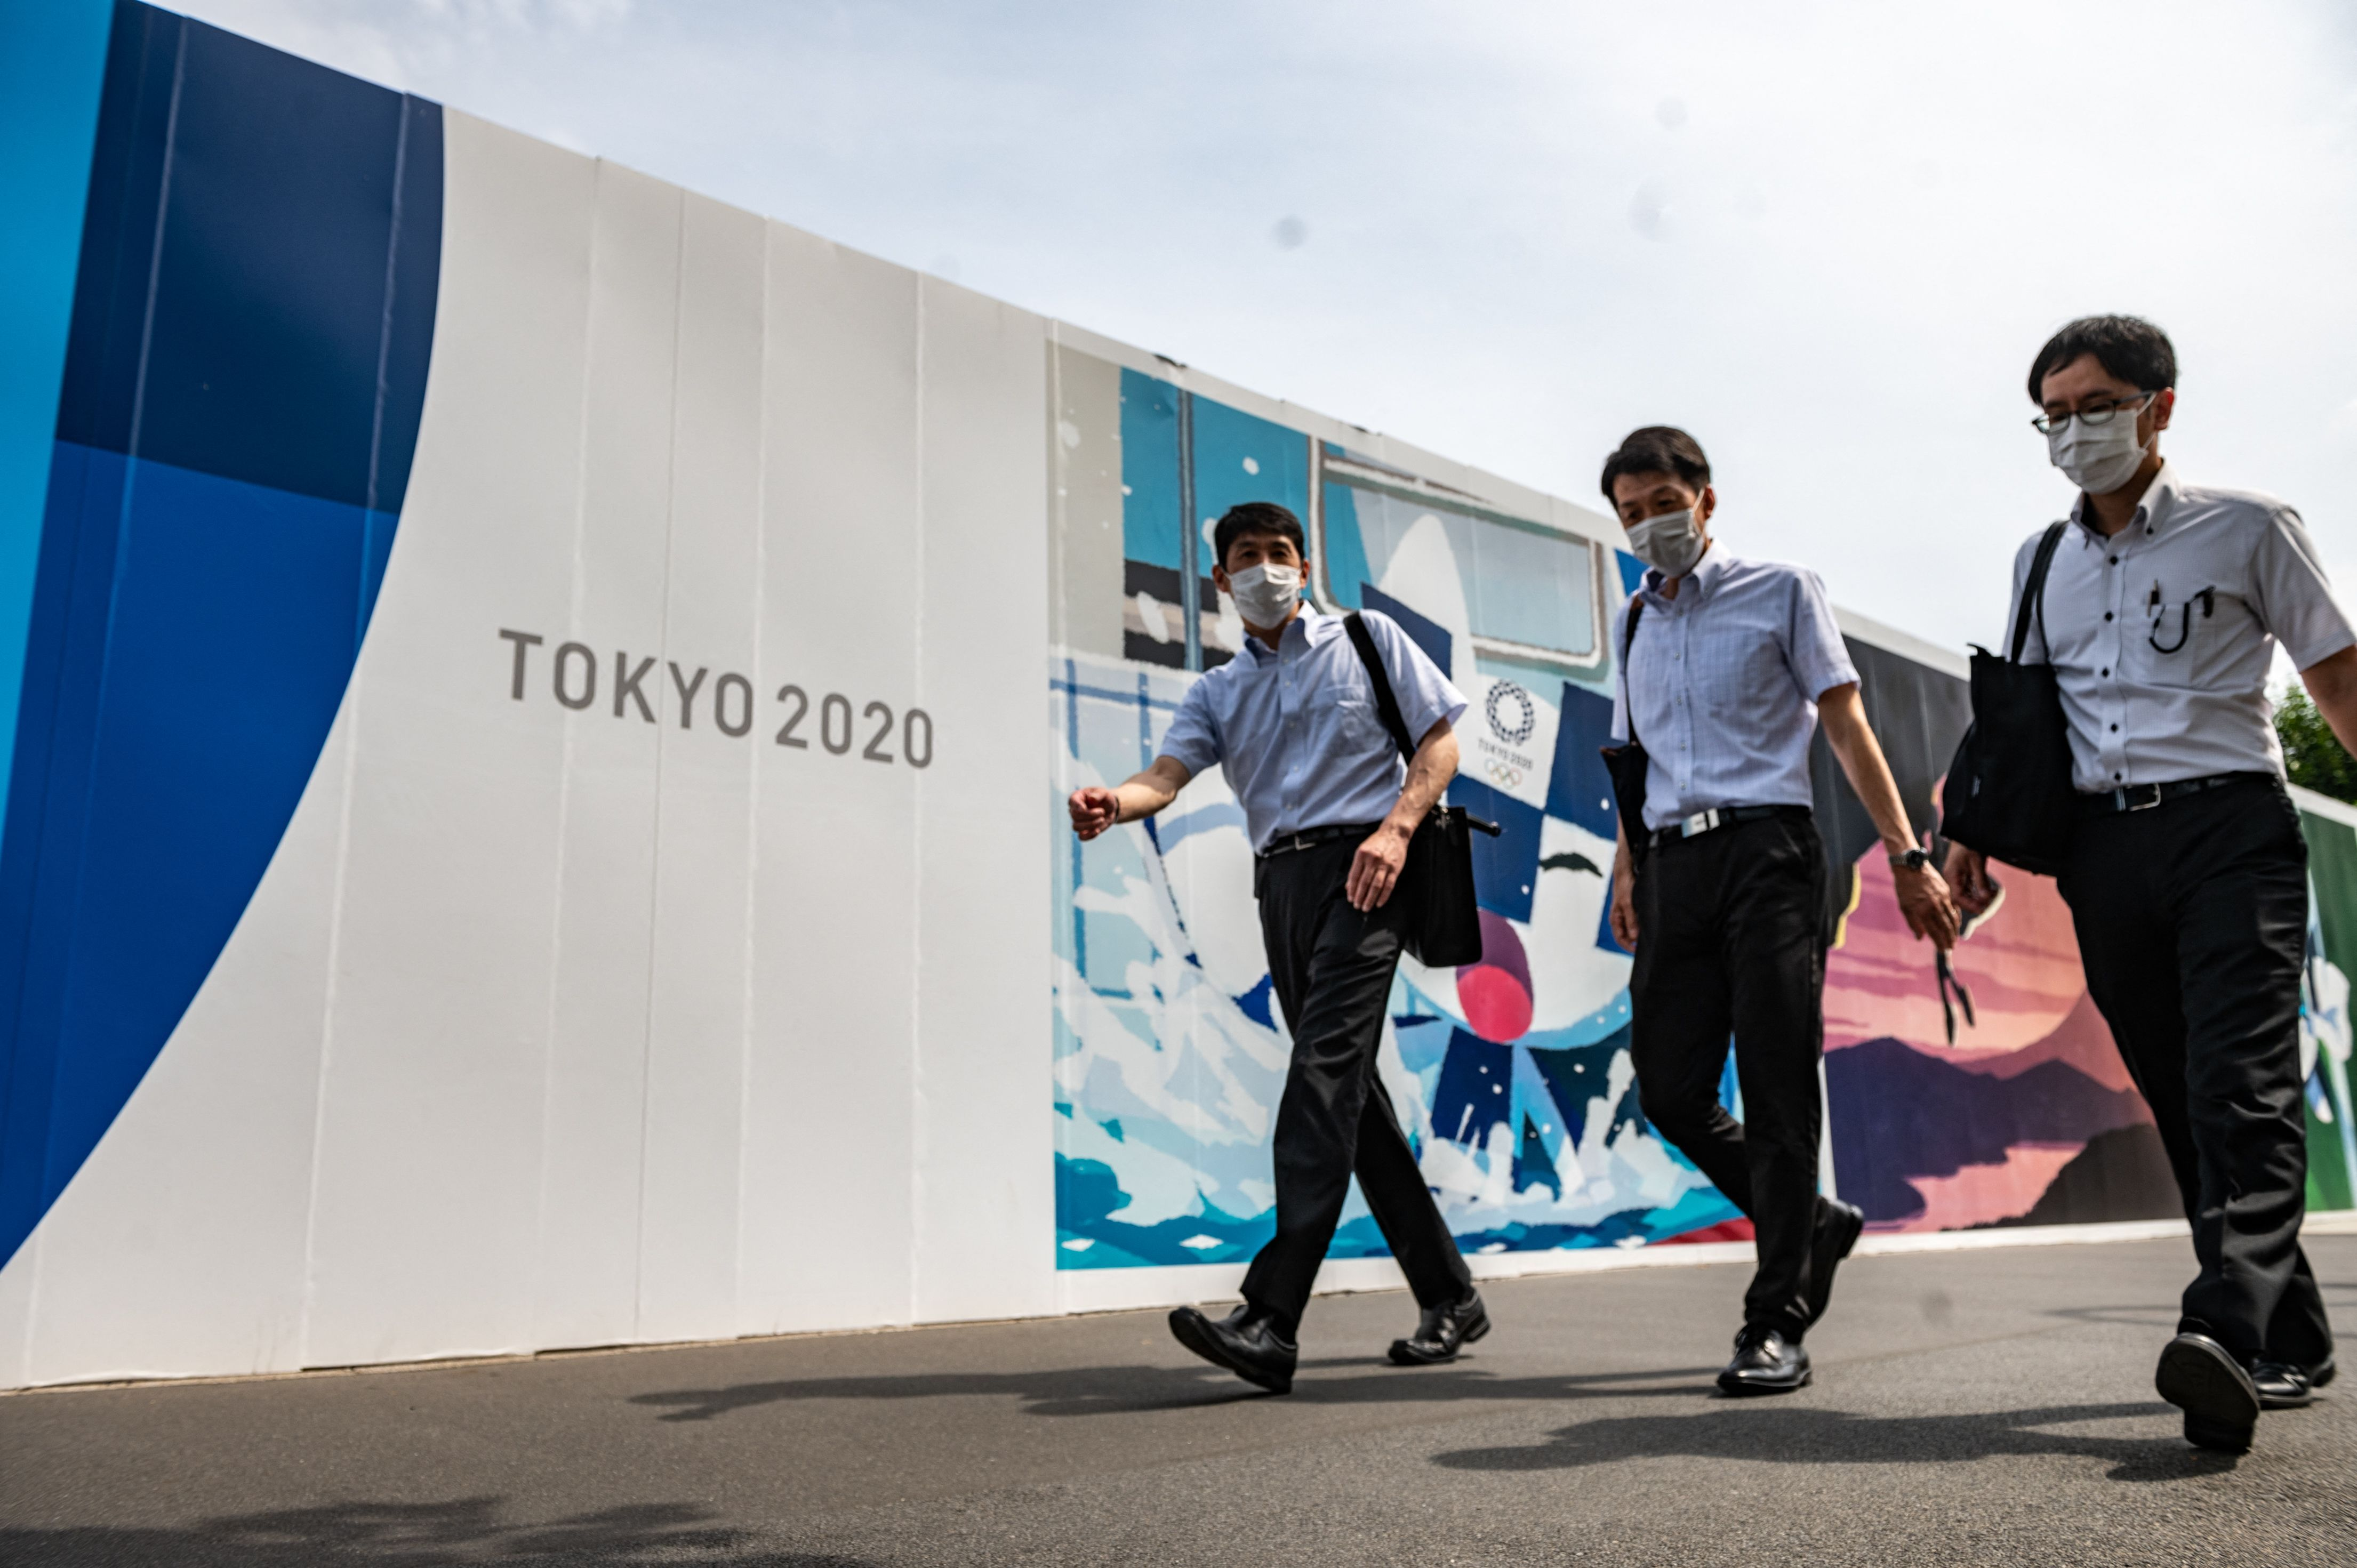 Team GB athletes face six days hard quarantine when they arrive in Tokyo